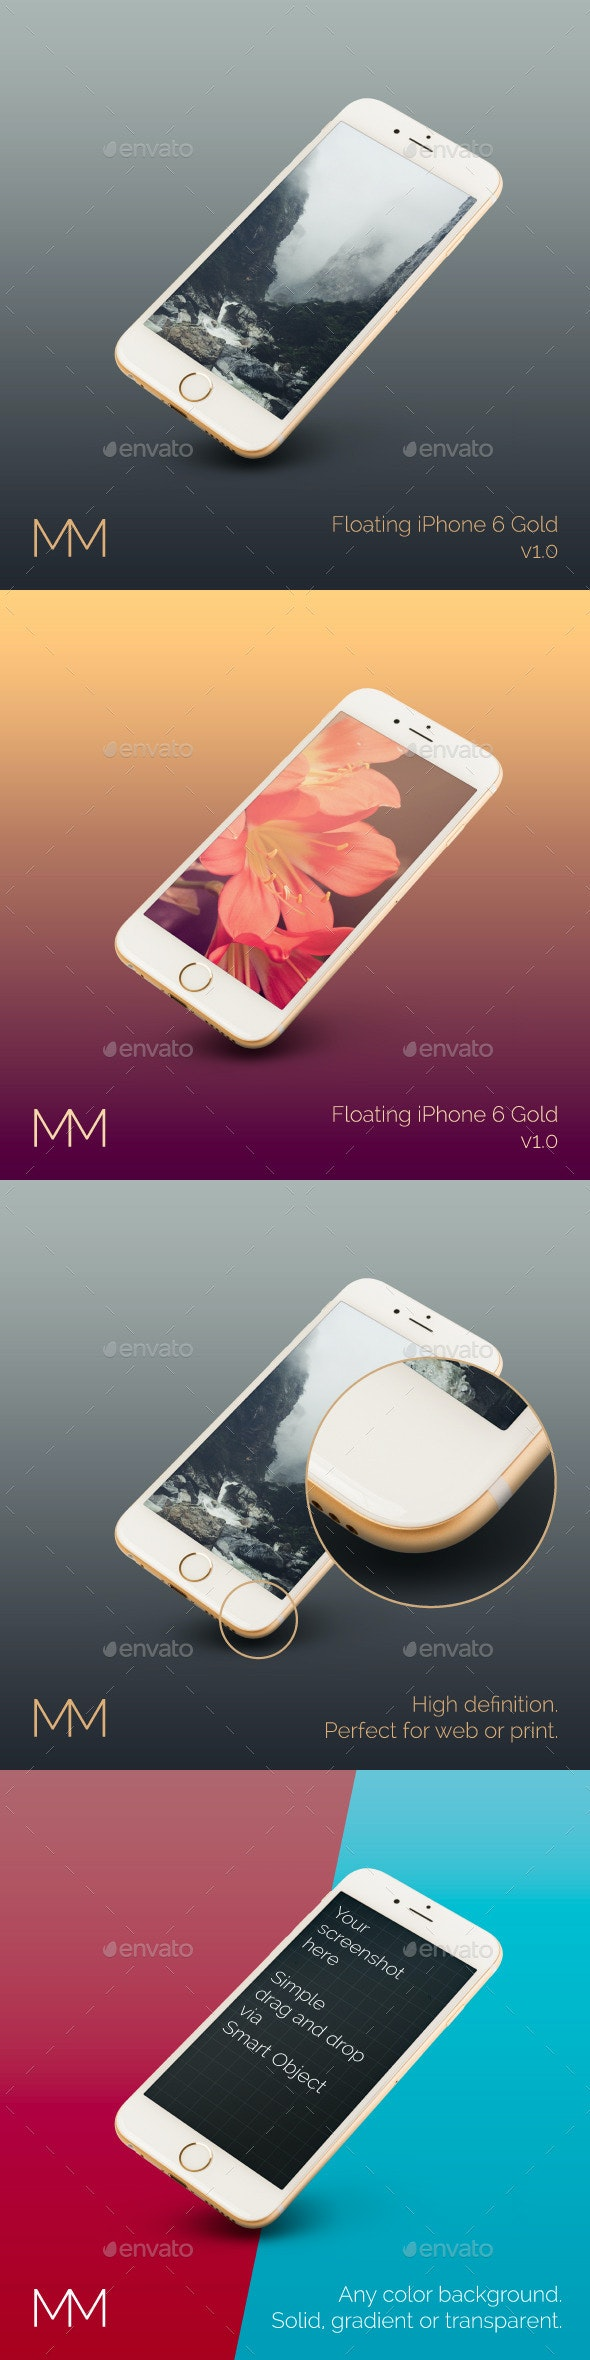 Floating iPhone 6 Gold MockUp - Product Mock-Ups Graphics